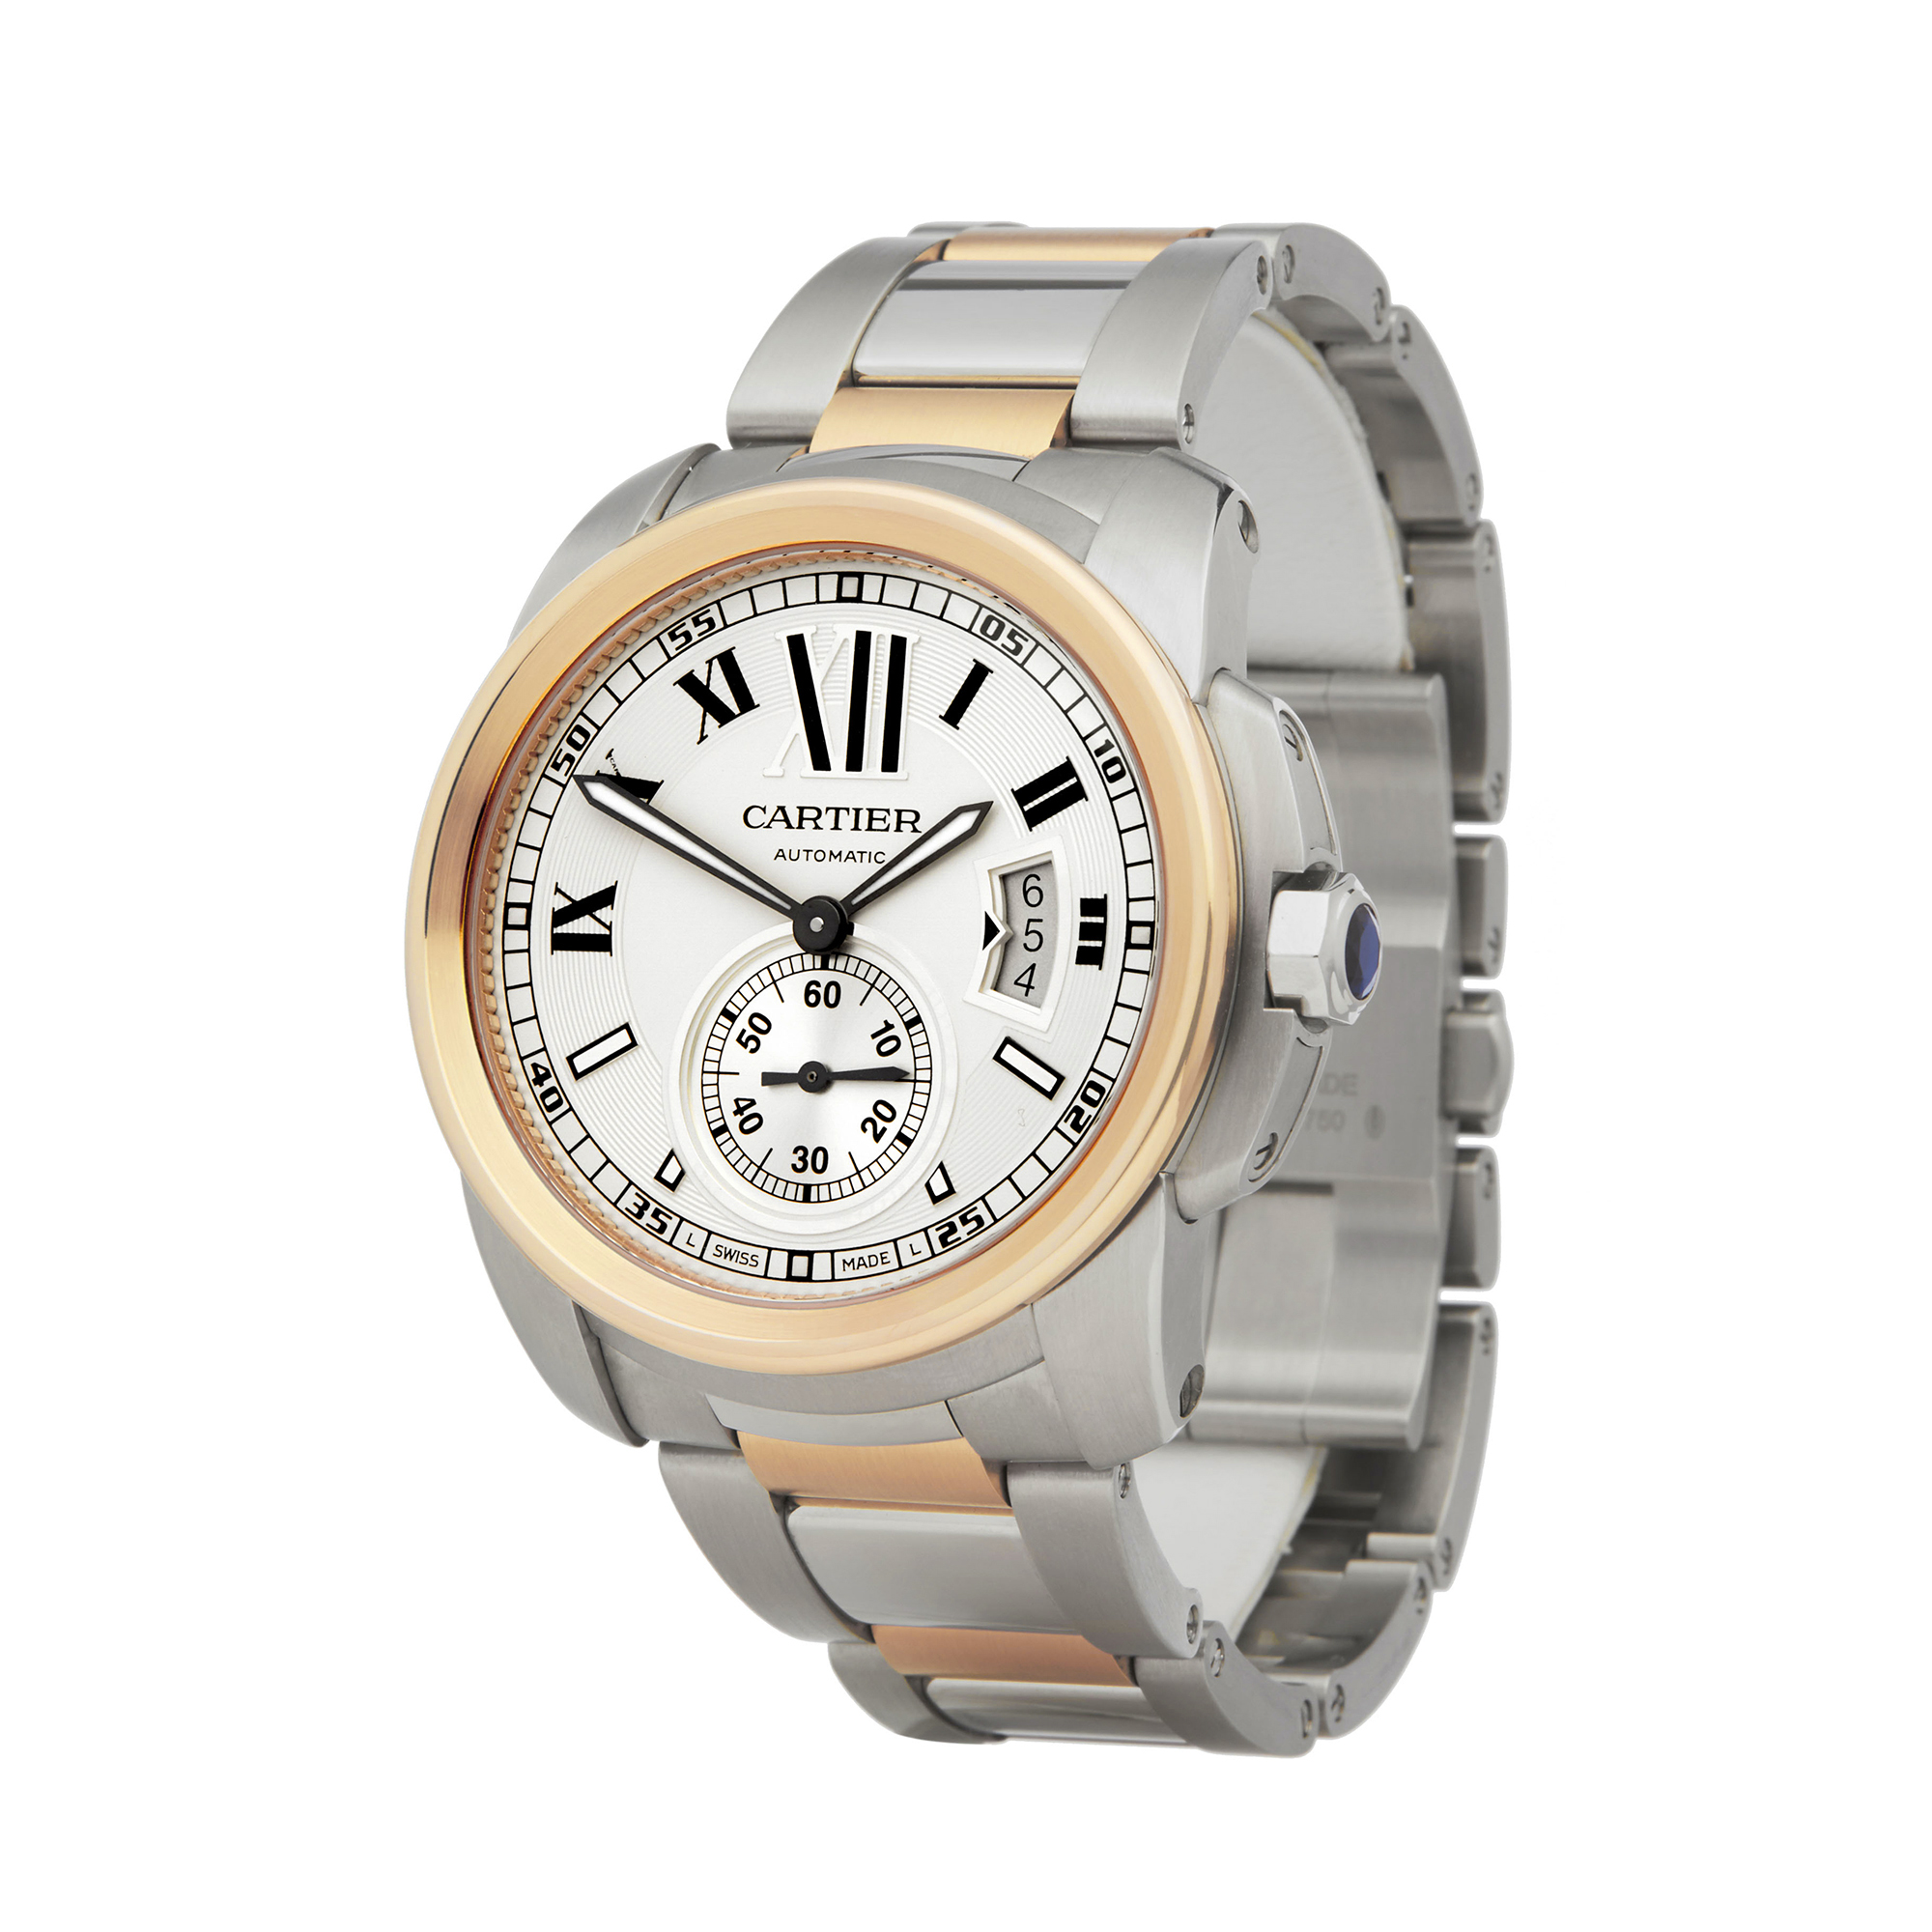 Cartier Calibre W7100036 or 3389 Men Stainless Steel & Rose Gold Watch